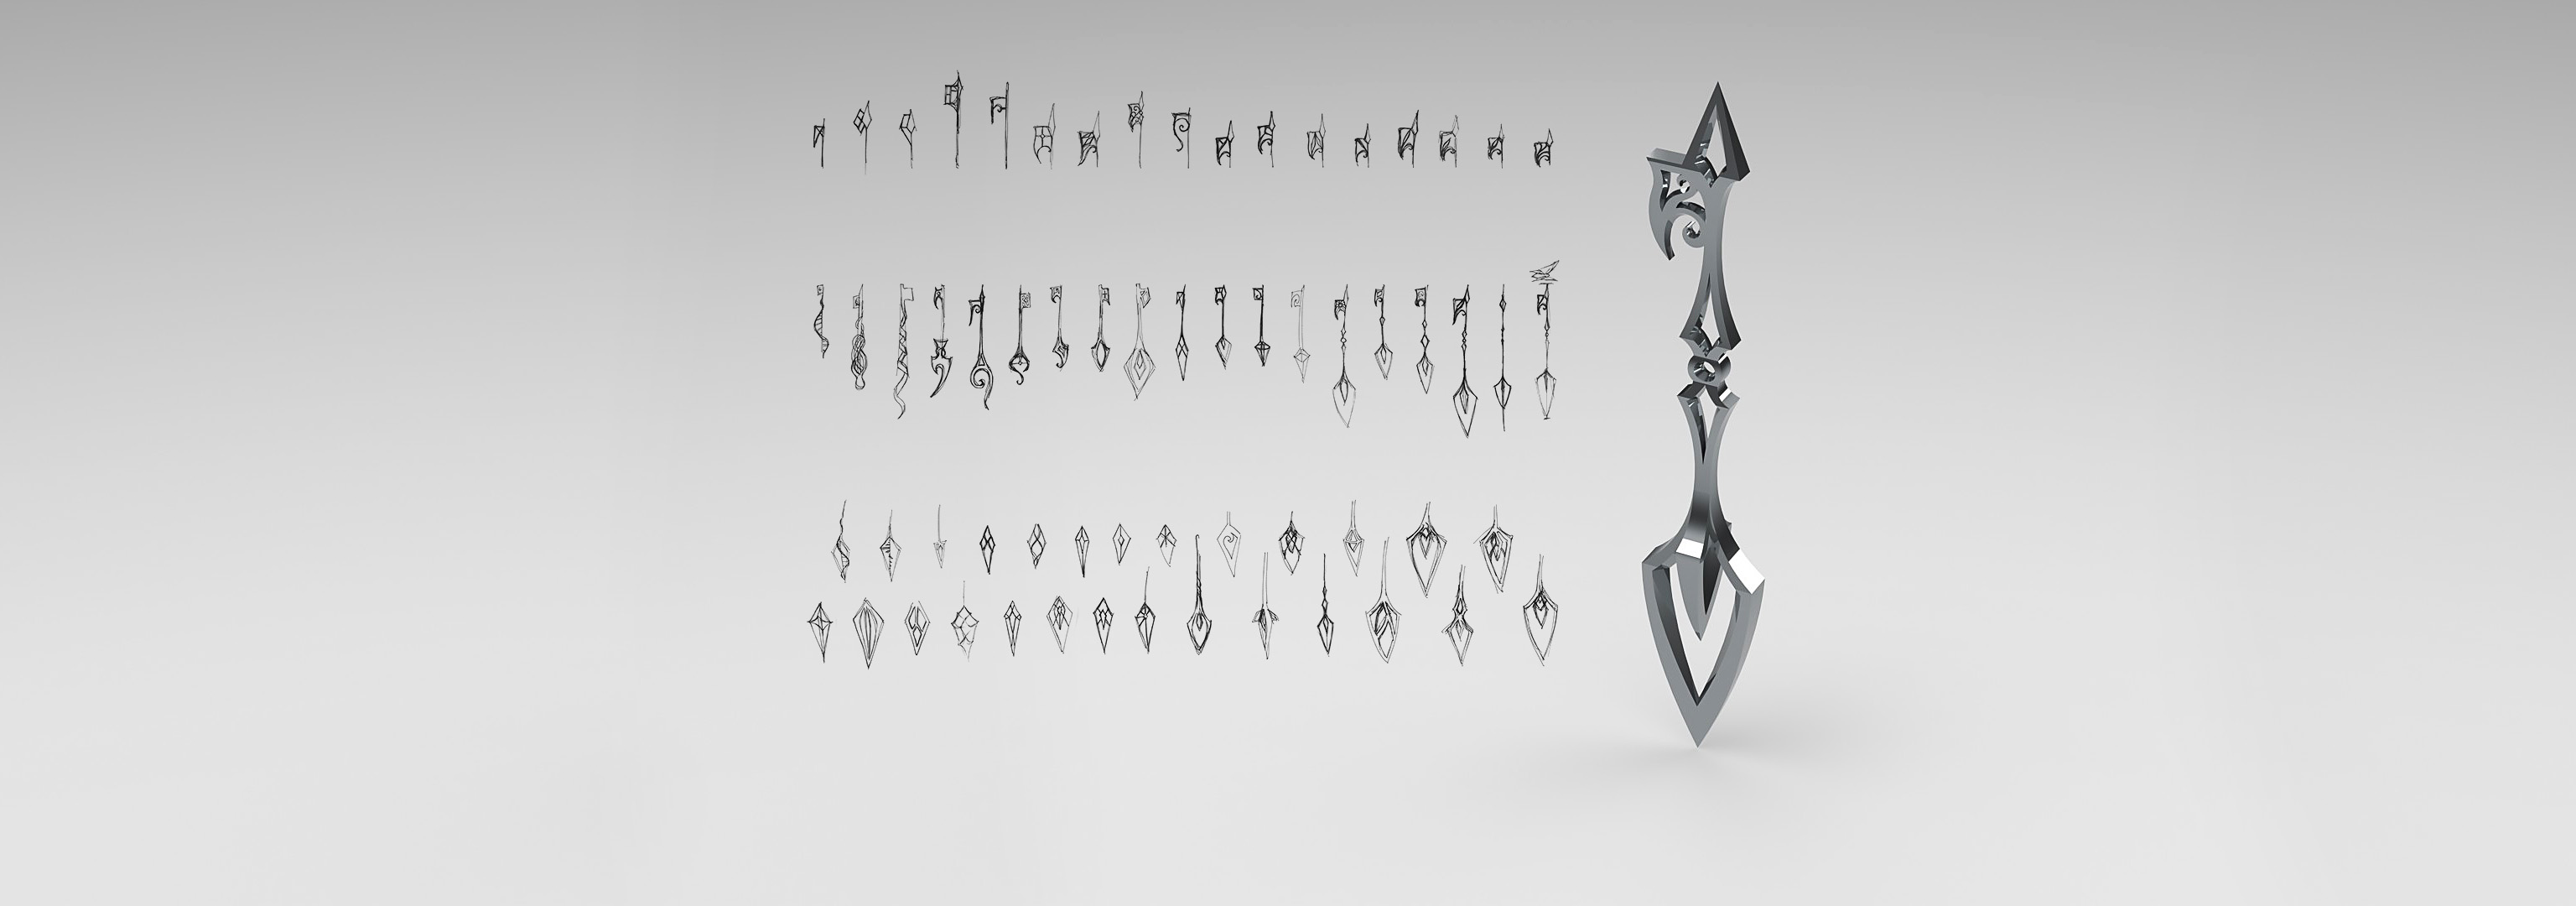 One 3D model and dozens of sketches of skeleton keys.